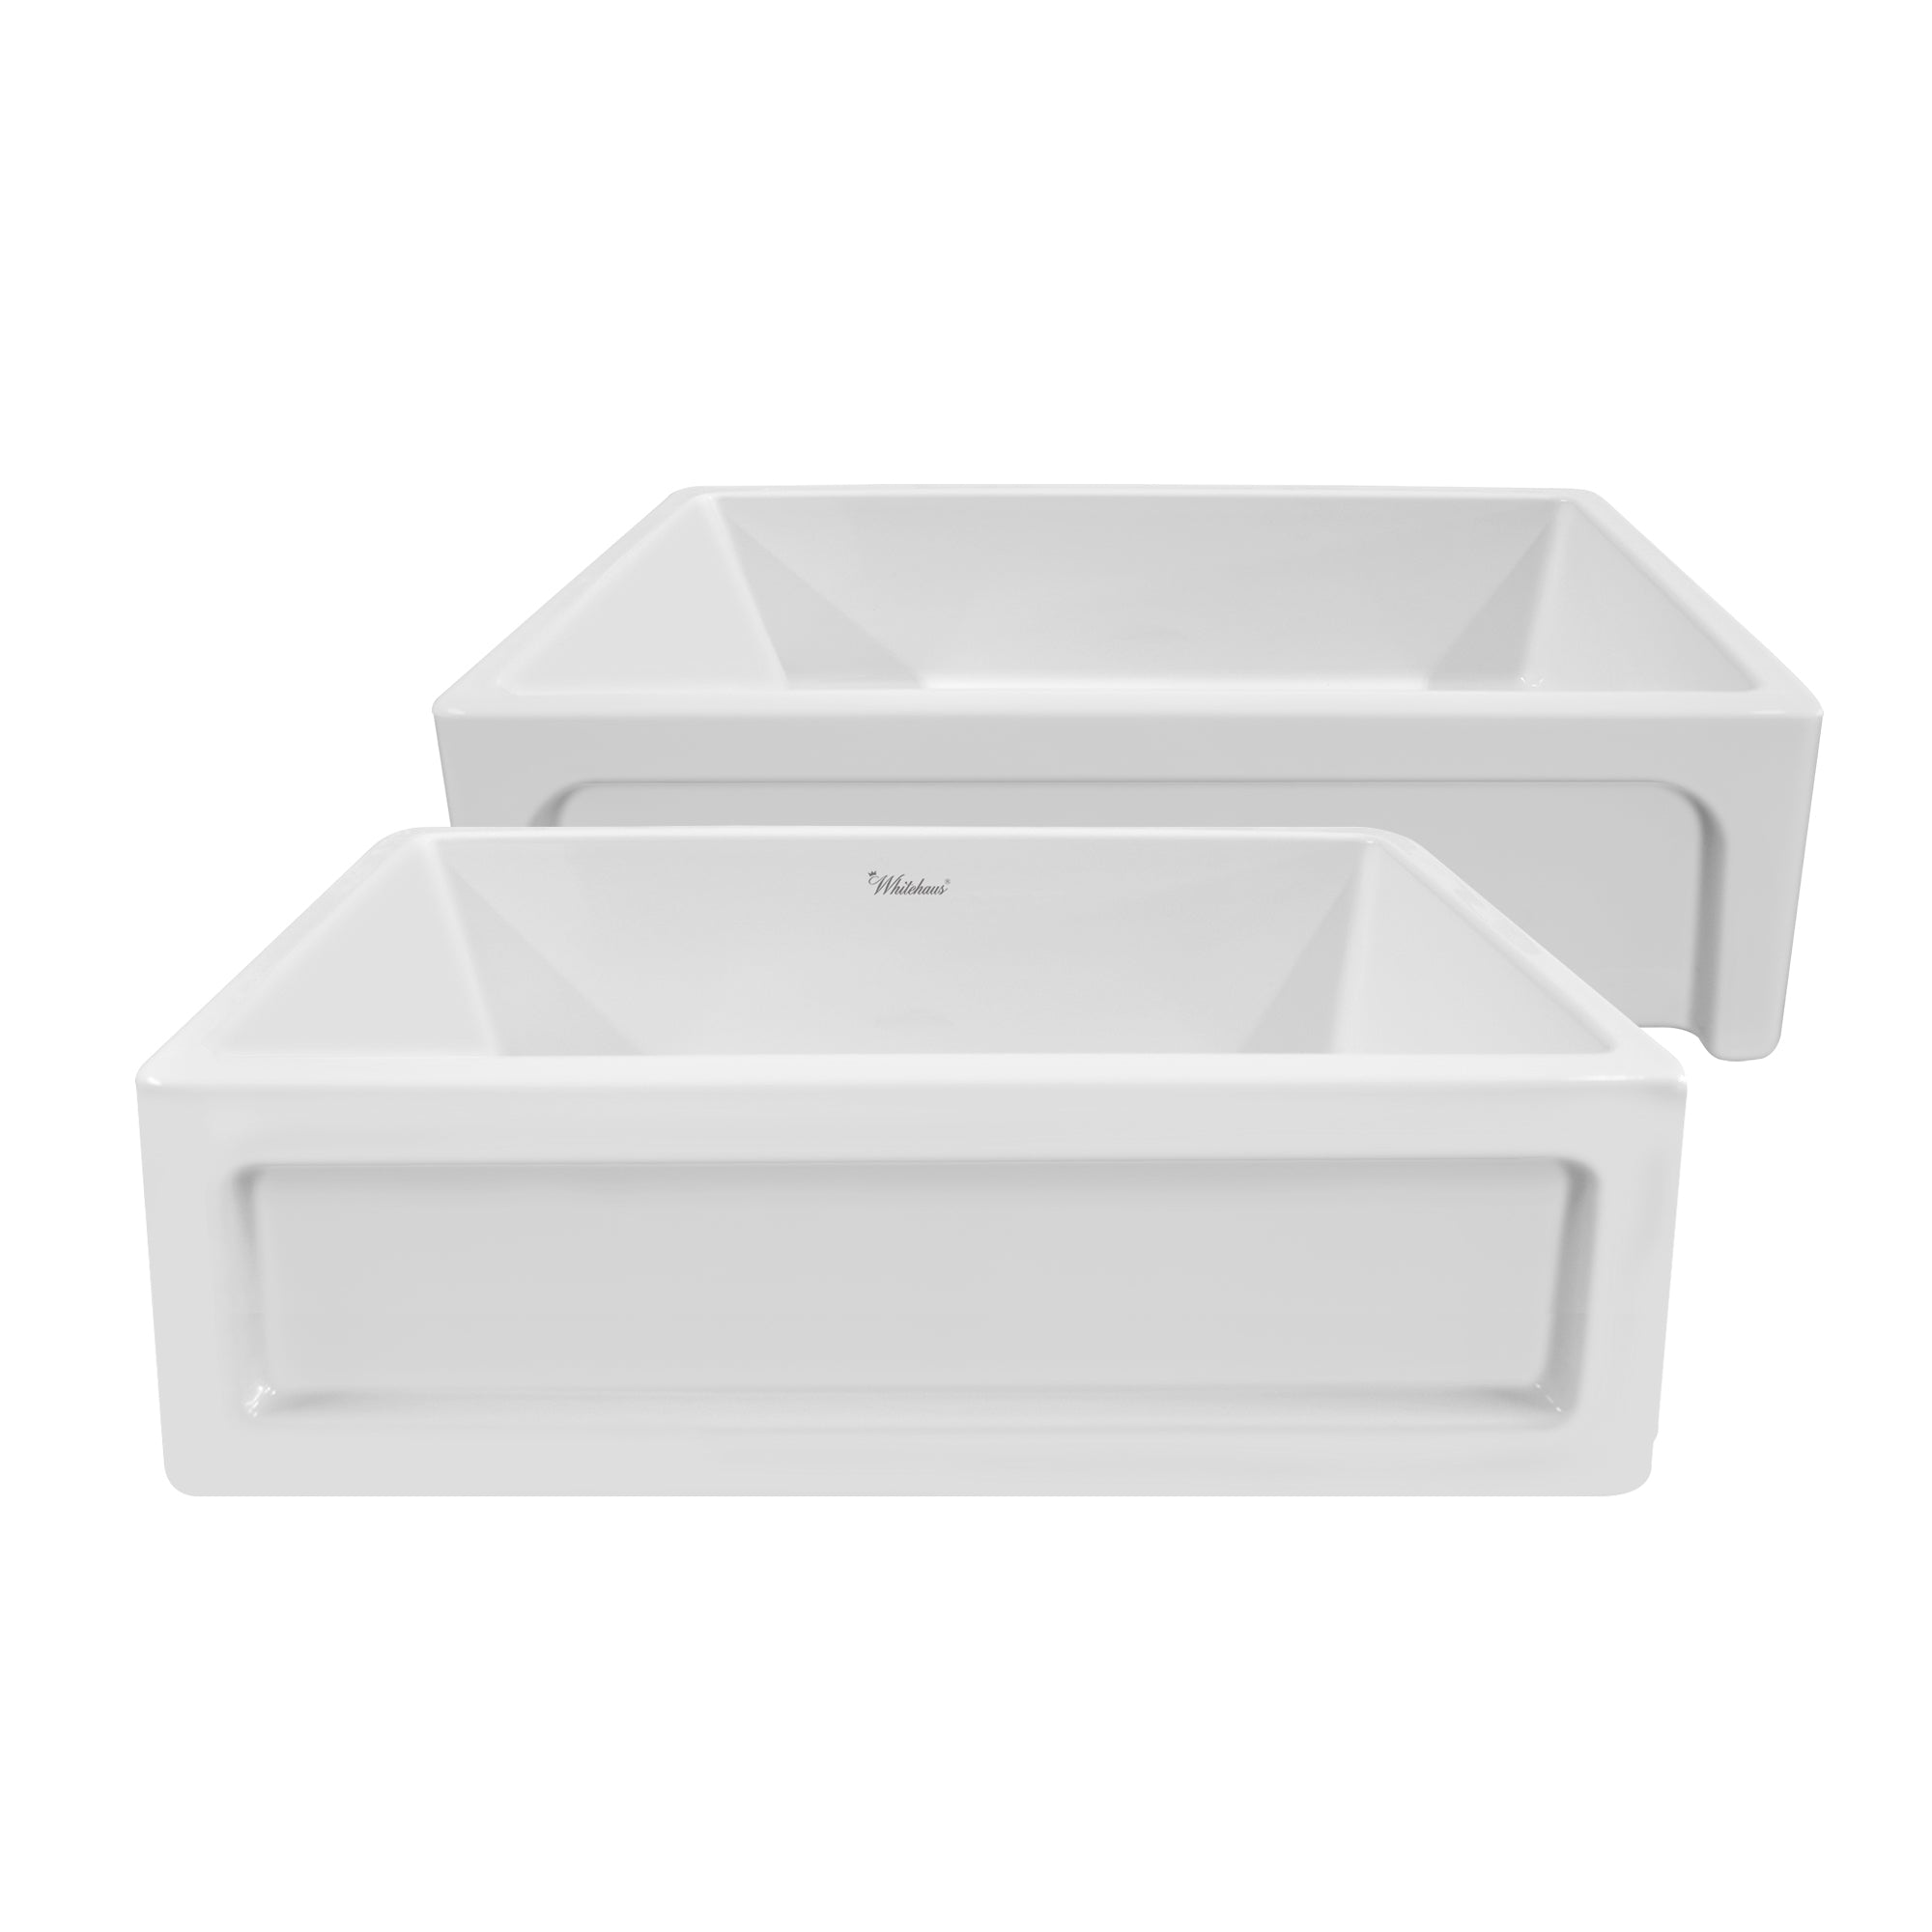 "Shakerhaus 33"" reversible fireclay kitchen sink"